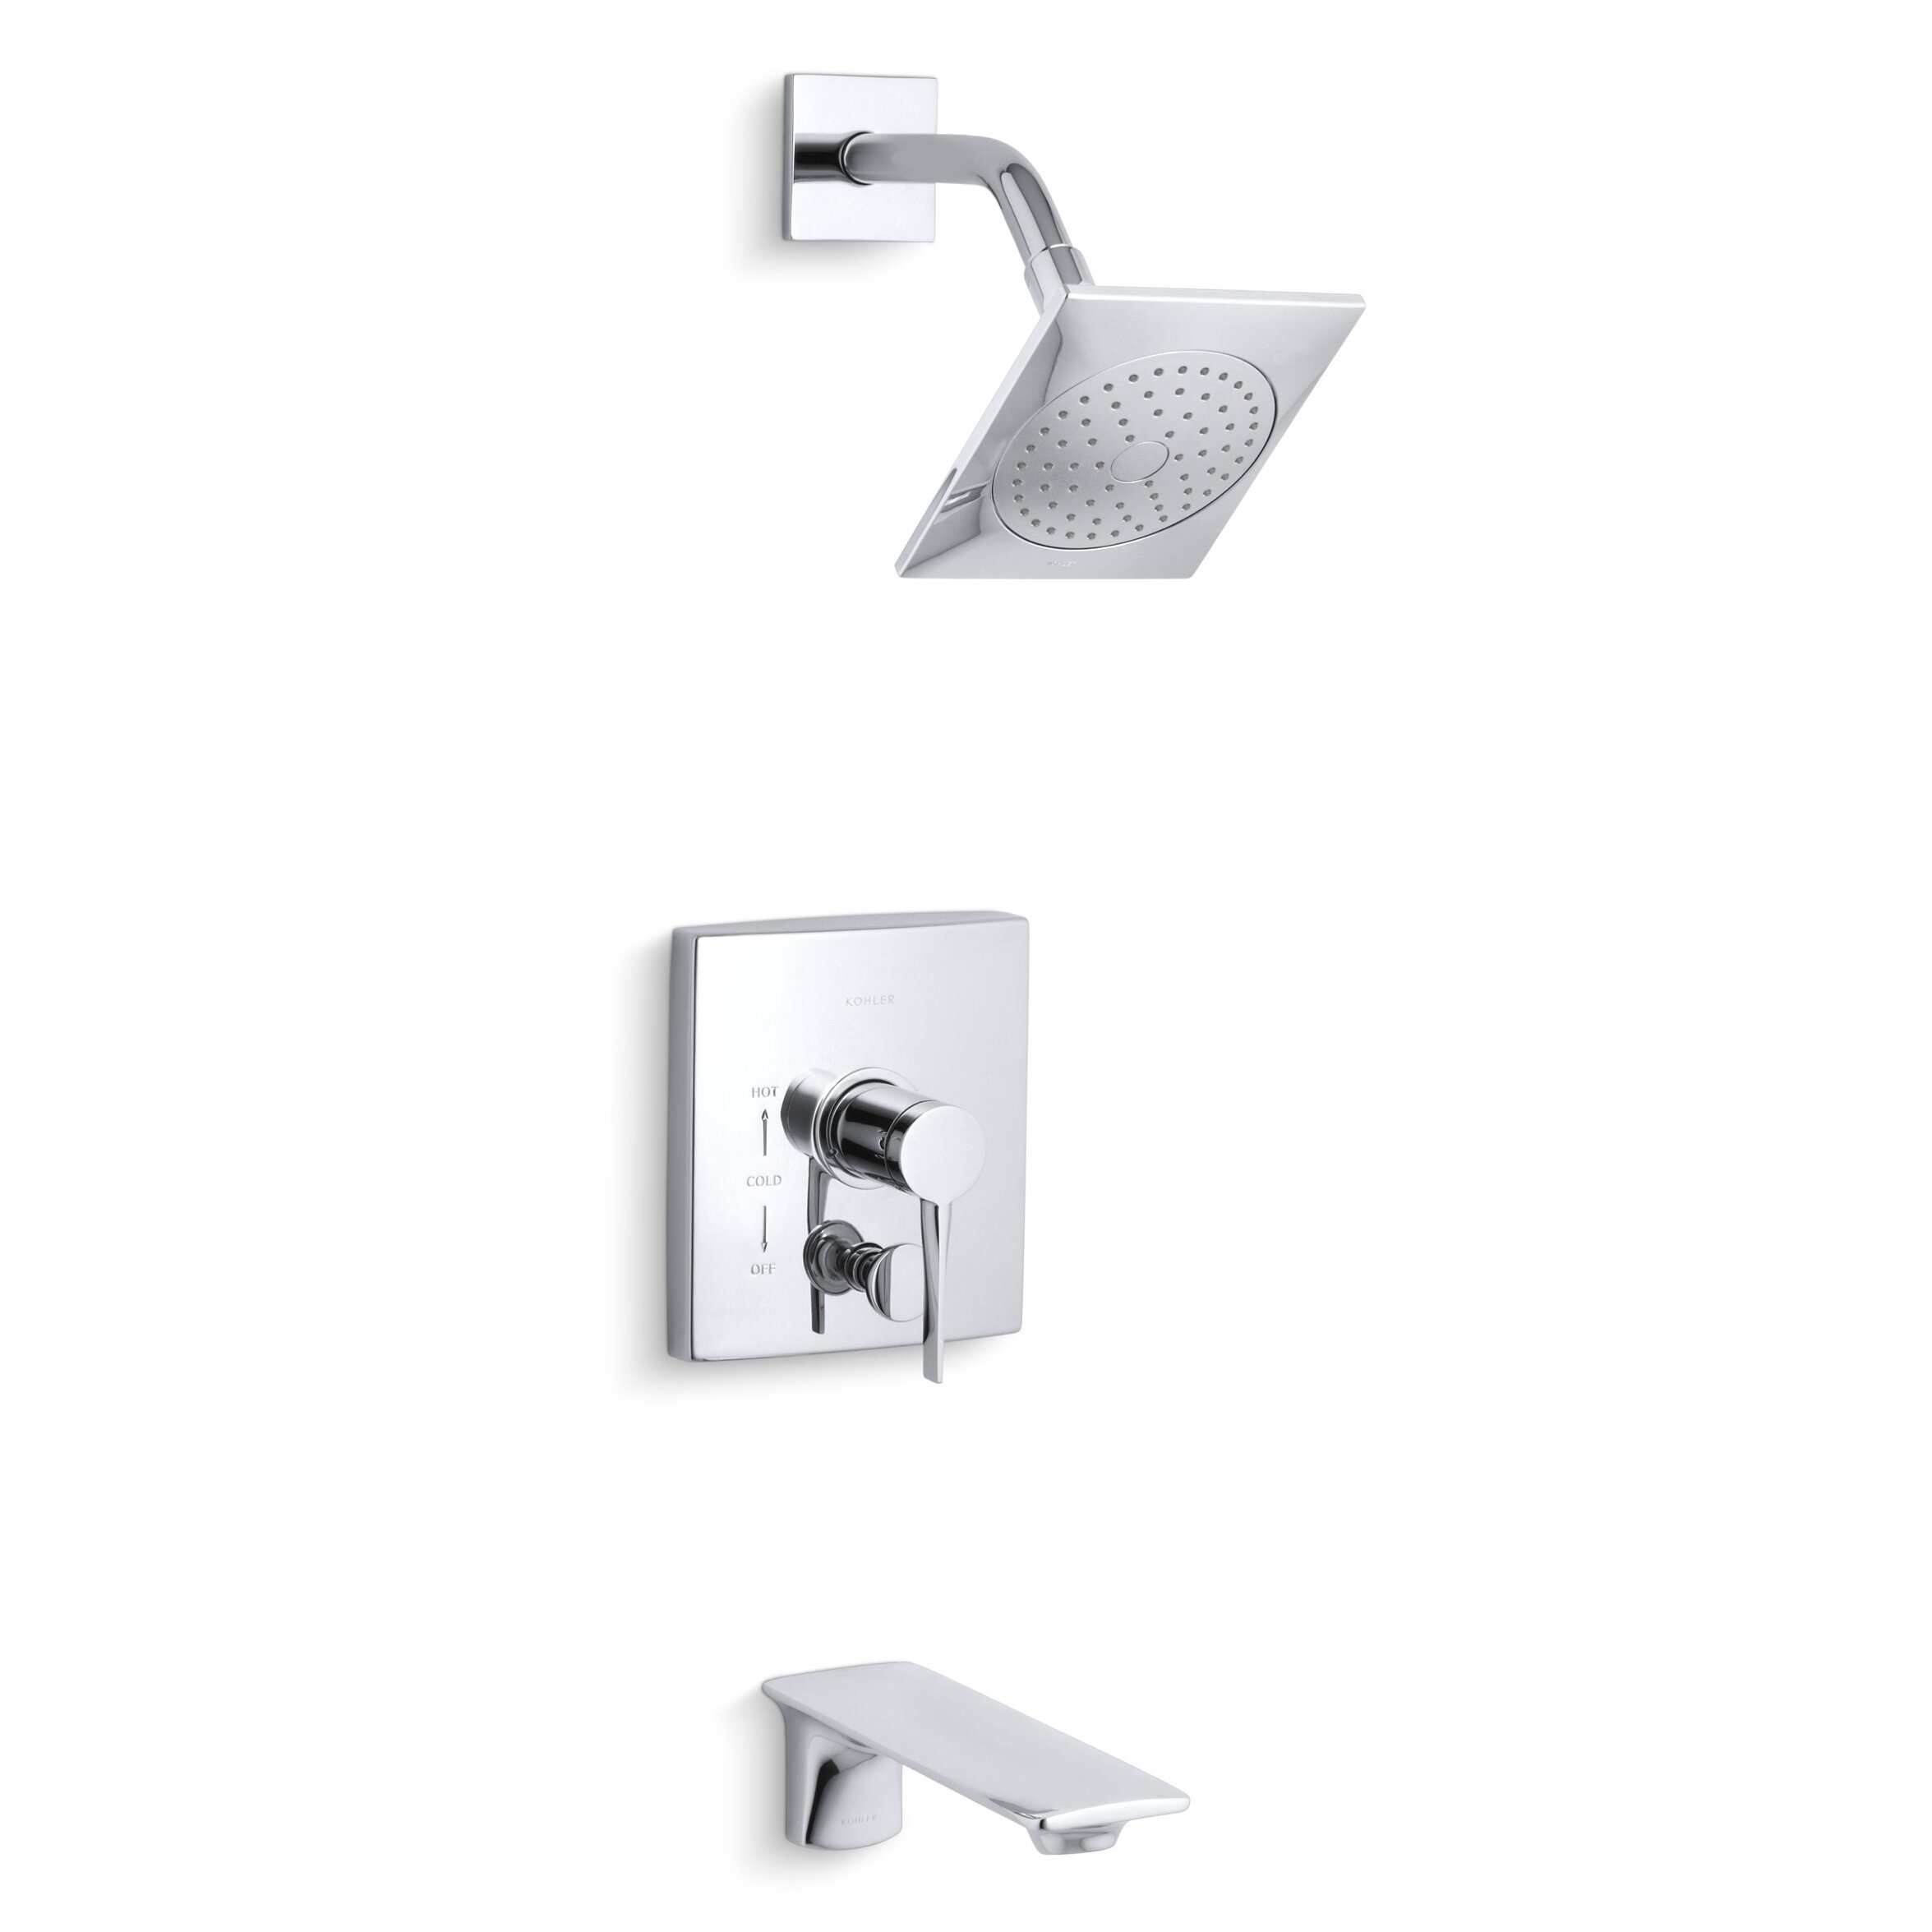 Kohler Stance Rite-Temp Bath/Shower Trim & Reviews | Wayfair - Kohler Stance Rite-Temp Bath/Shower Trim